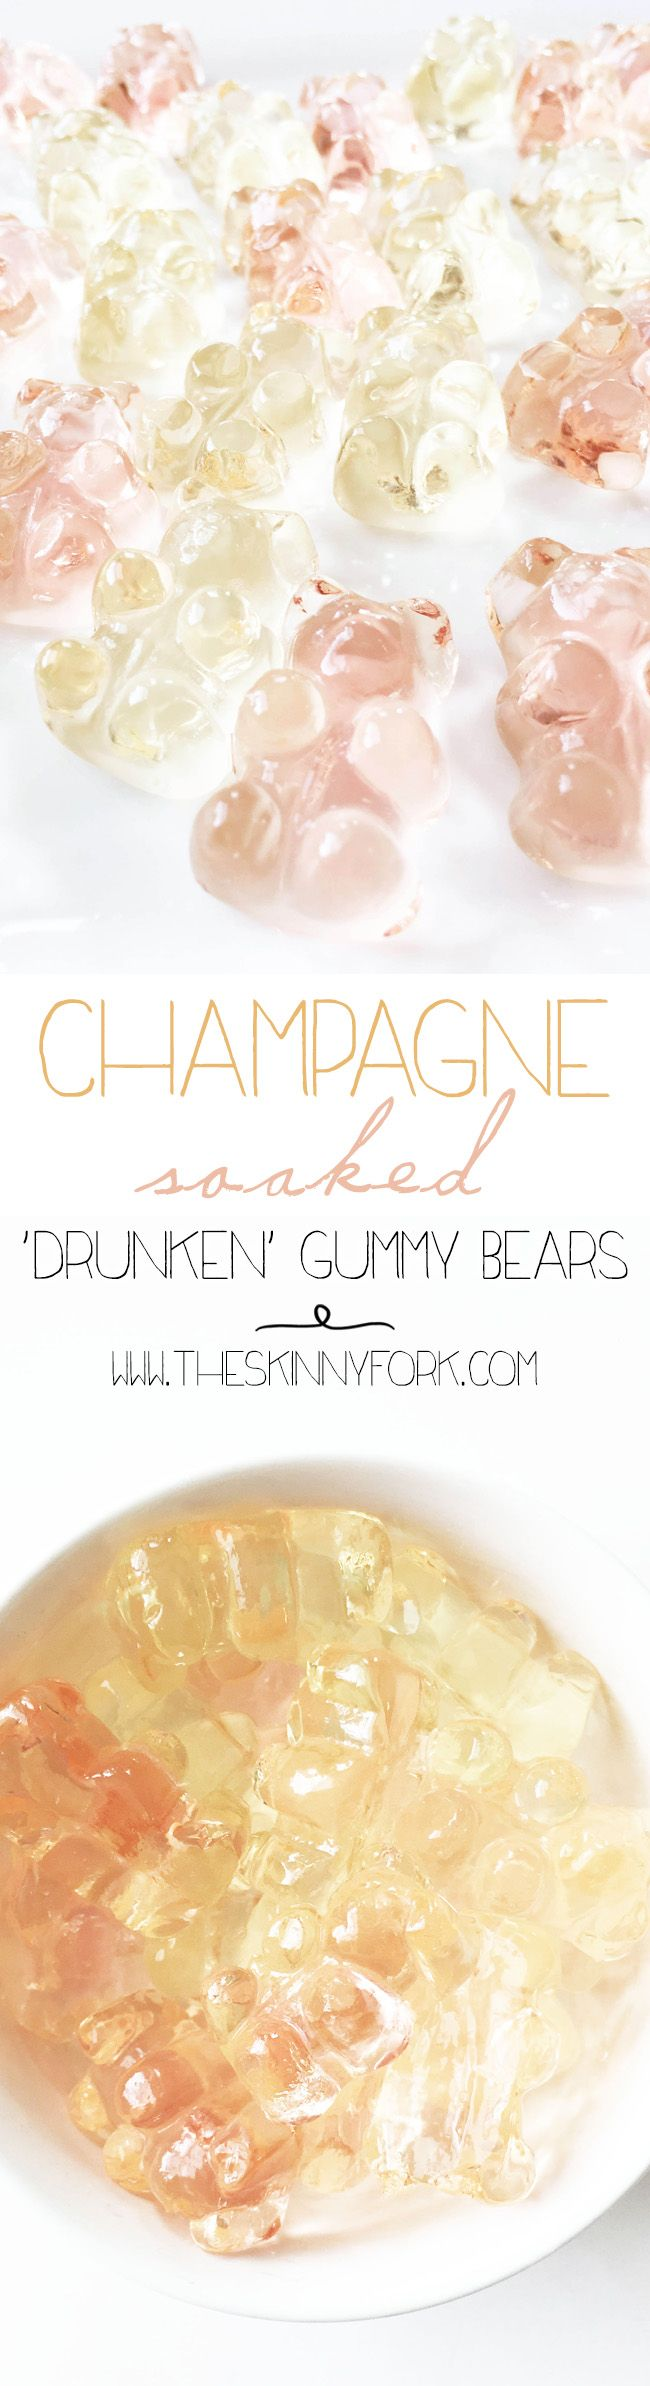 Champagne Soaked Gummy Bears - use #ConoSur Brut Sparkling or #AlmaNegra Brut Rosé Sparkling (and if you order all clear or white gummy bears they will be especially pretty!)